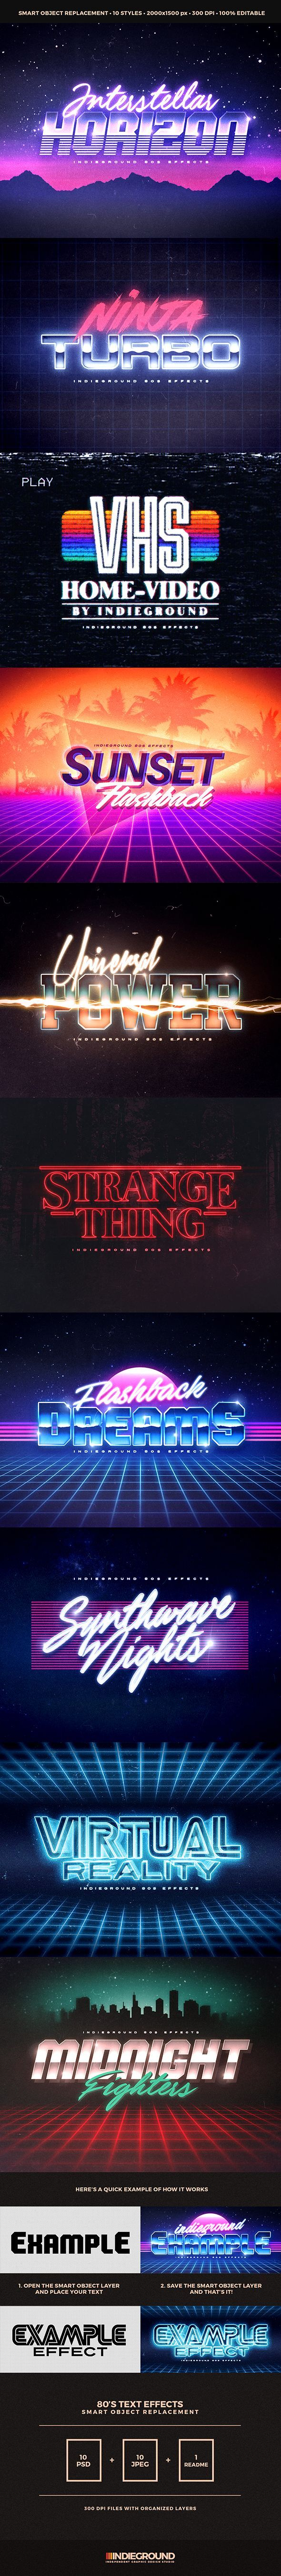 80s poster design - 80s Text Effects By Lyova12 On Deviantart